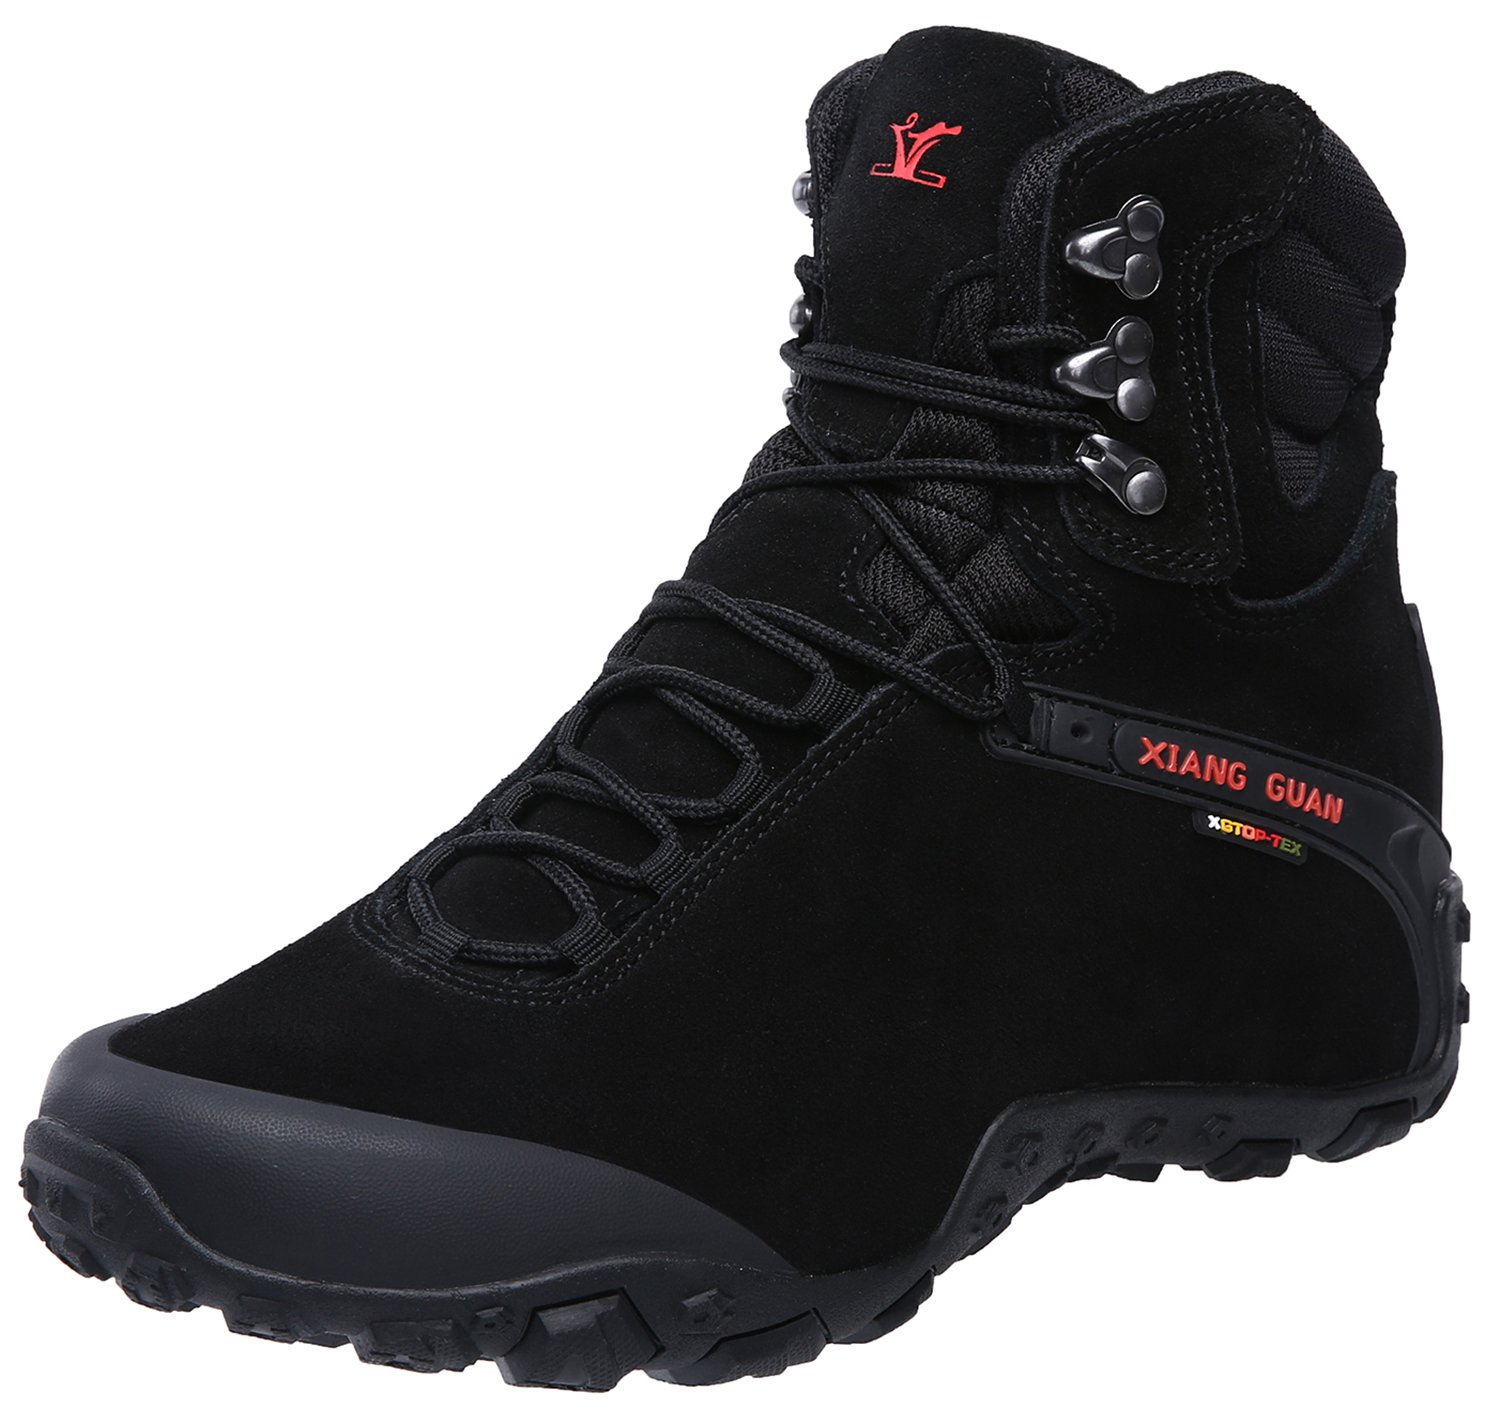 XIANG GUAN Men's Outdoor High-Top Waterproof Trekking Hiking Boots Black 12